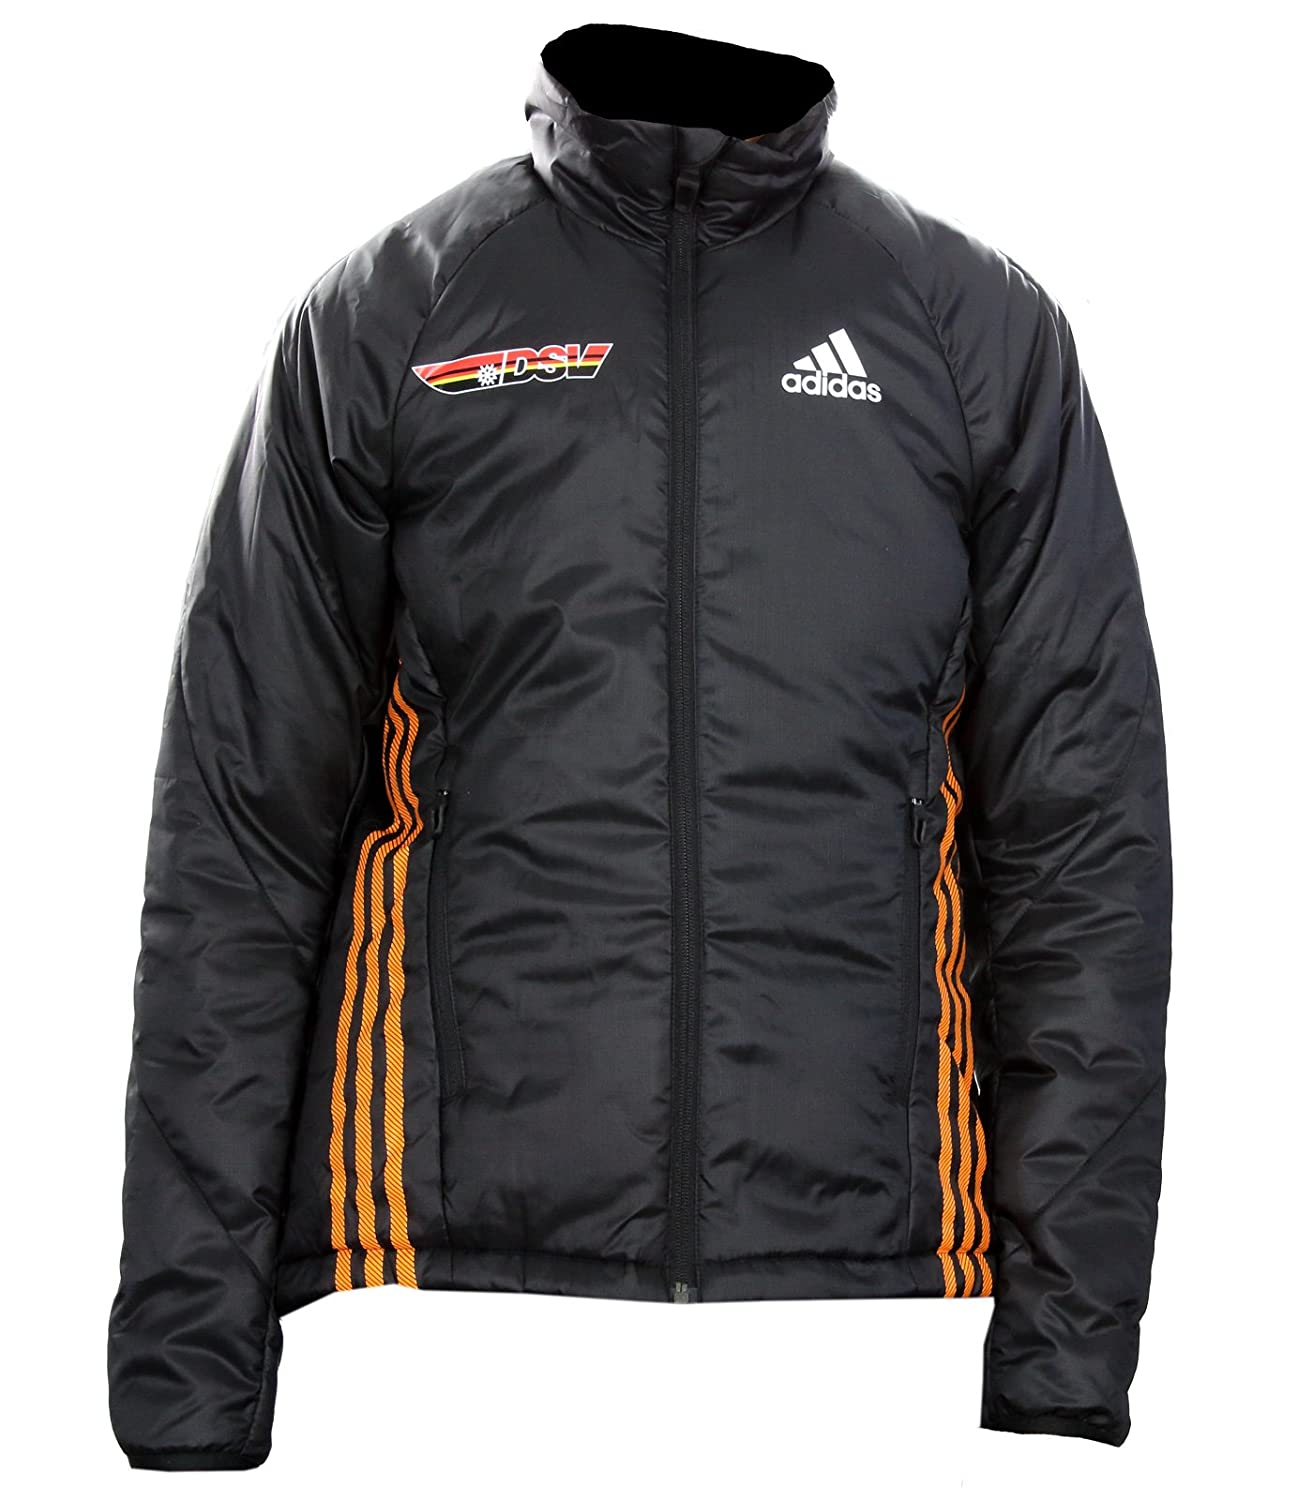 adidas Performance DSV Athleten Primaloft PL Outdoor Jacke Winter Ski Damen XS S M L XL